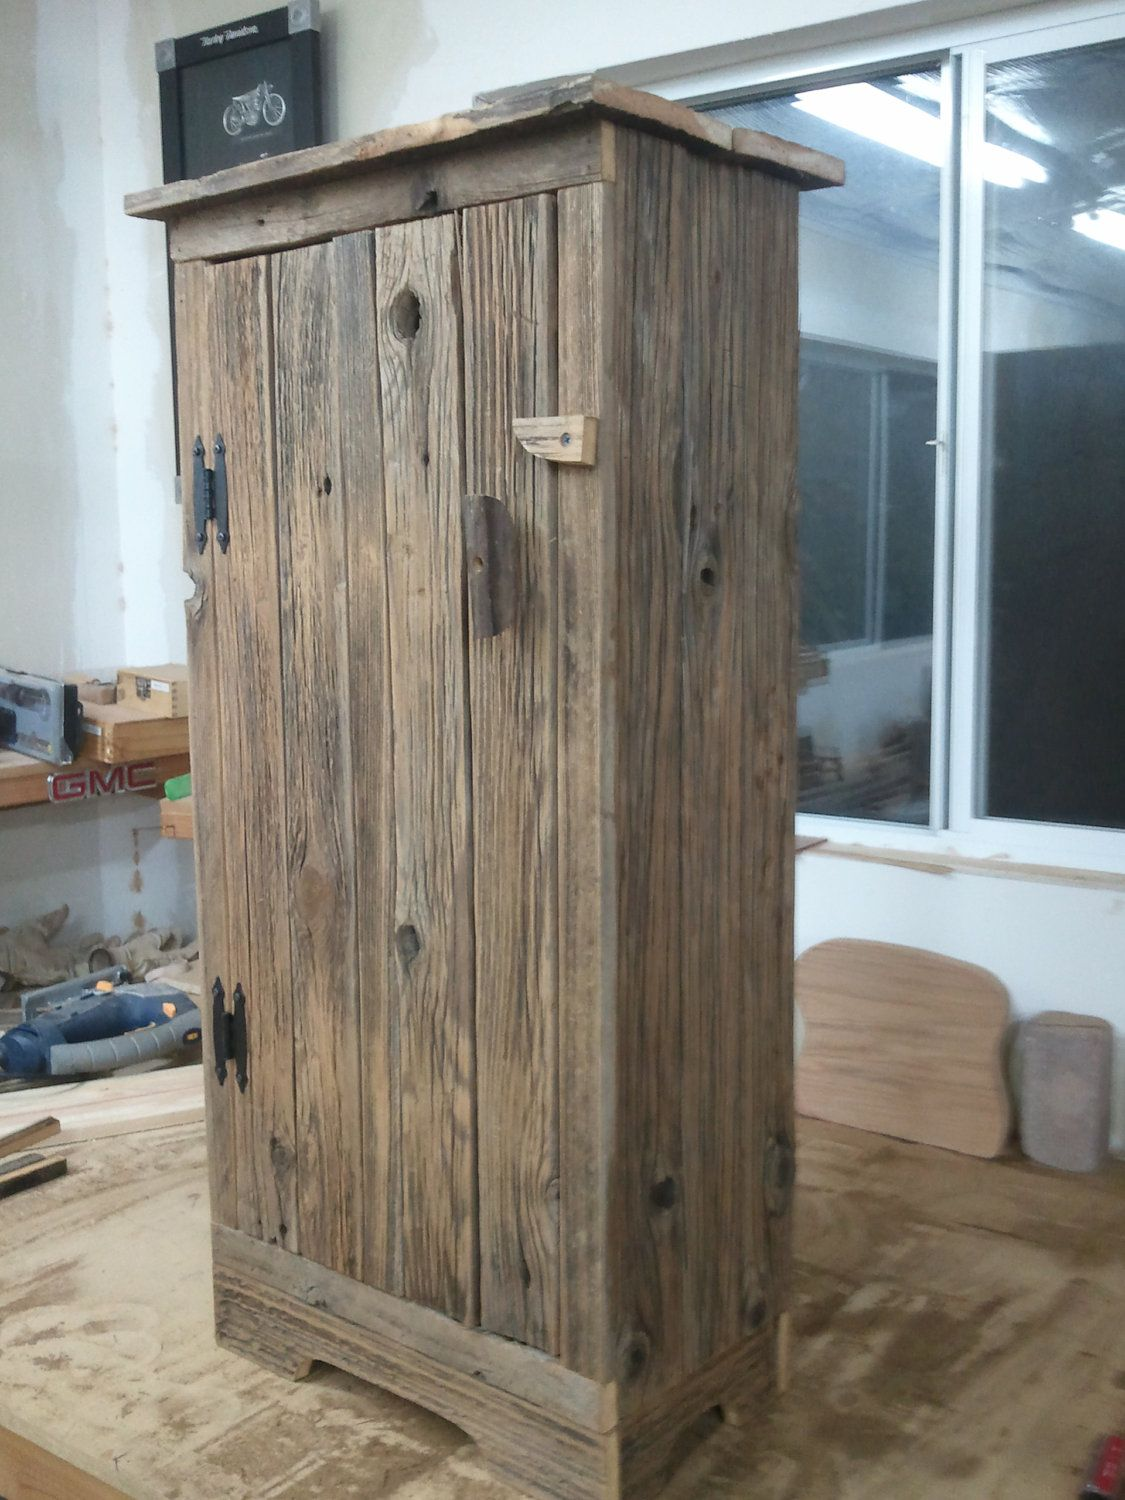 Barn Board Kitchen Cabinets Barnwood Jelly Cabinet 145 00 Via Etsy Diy Rustic